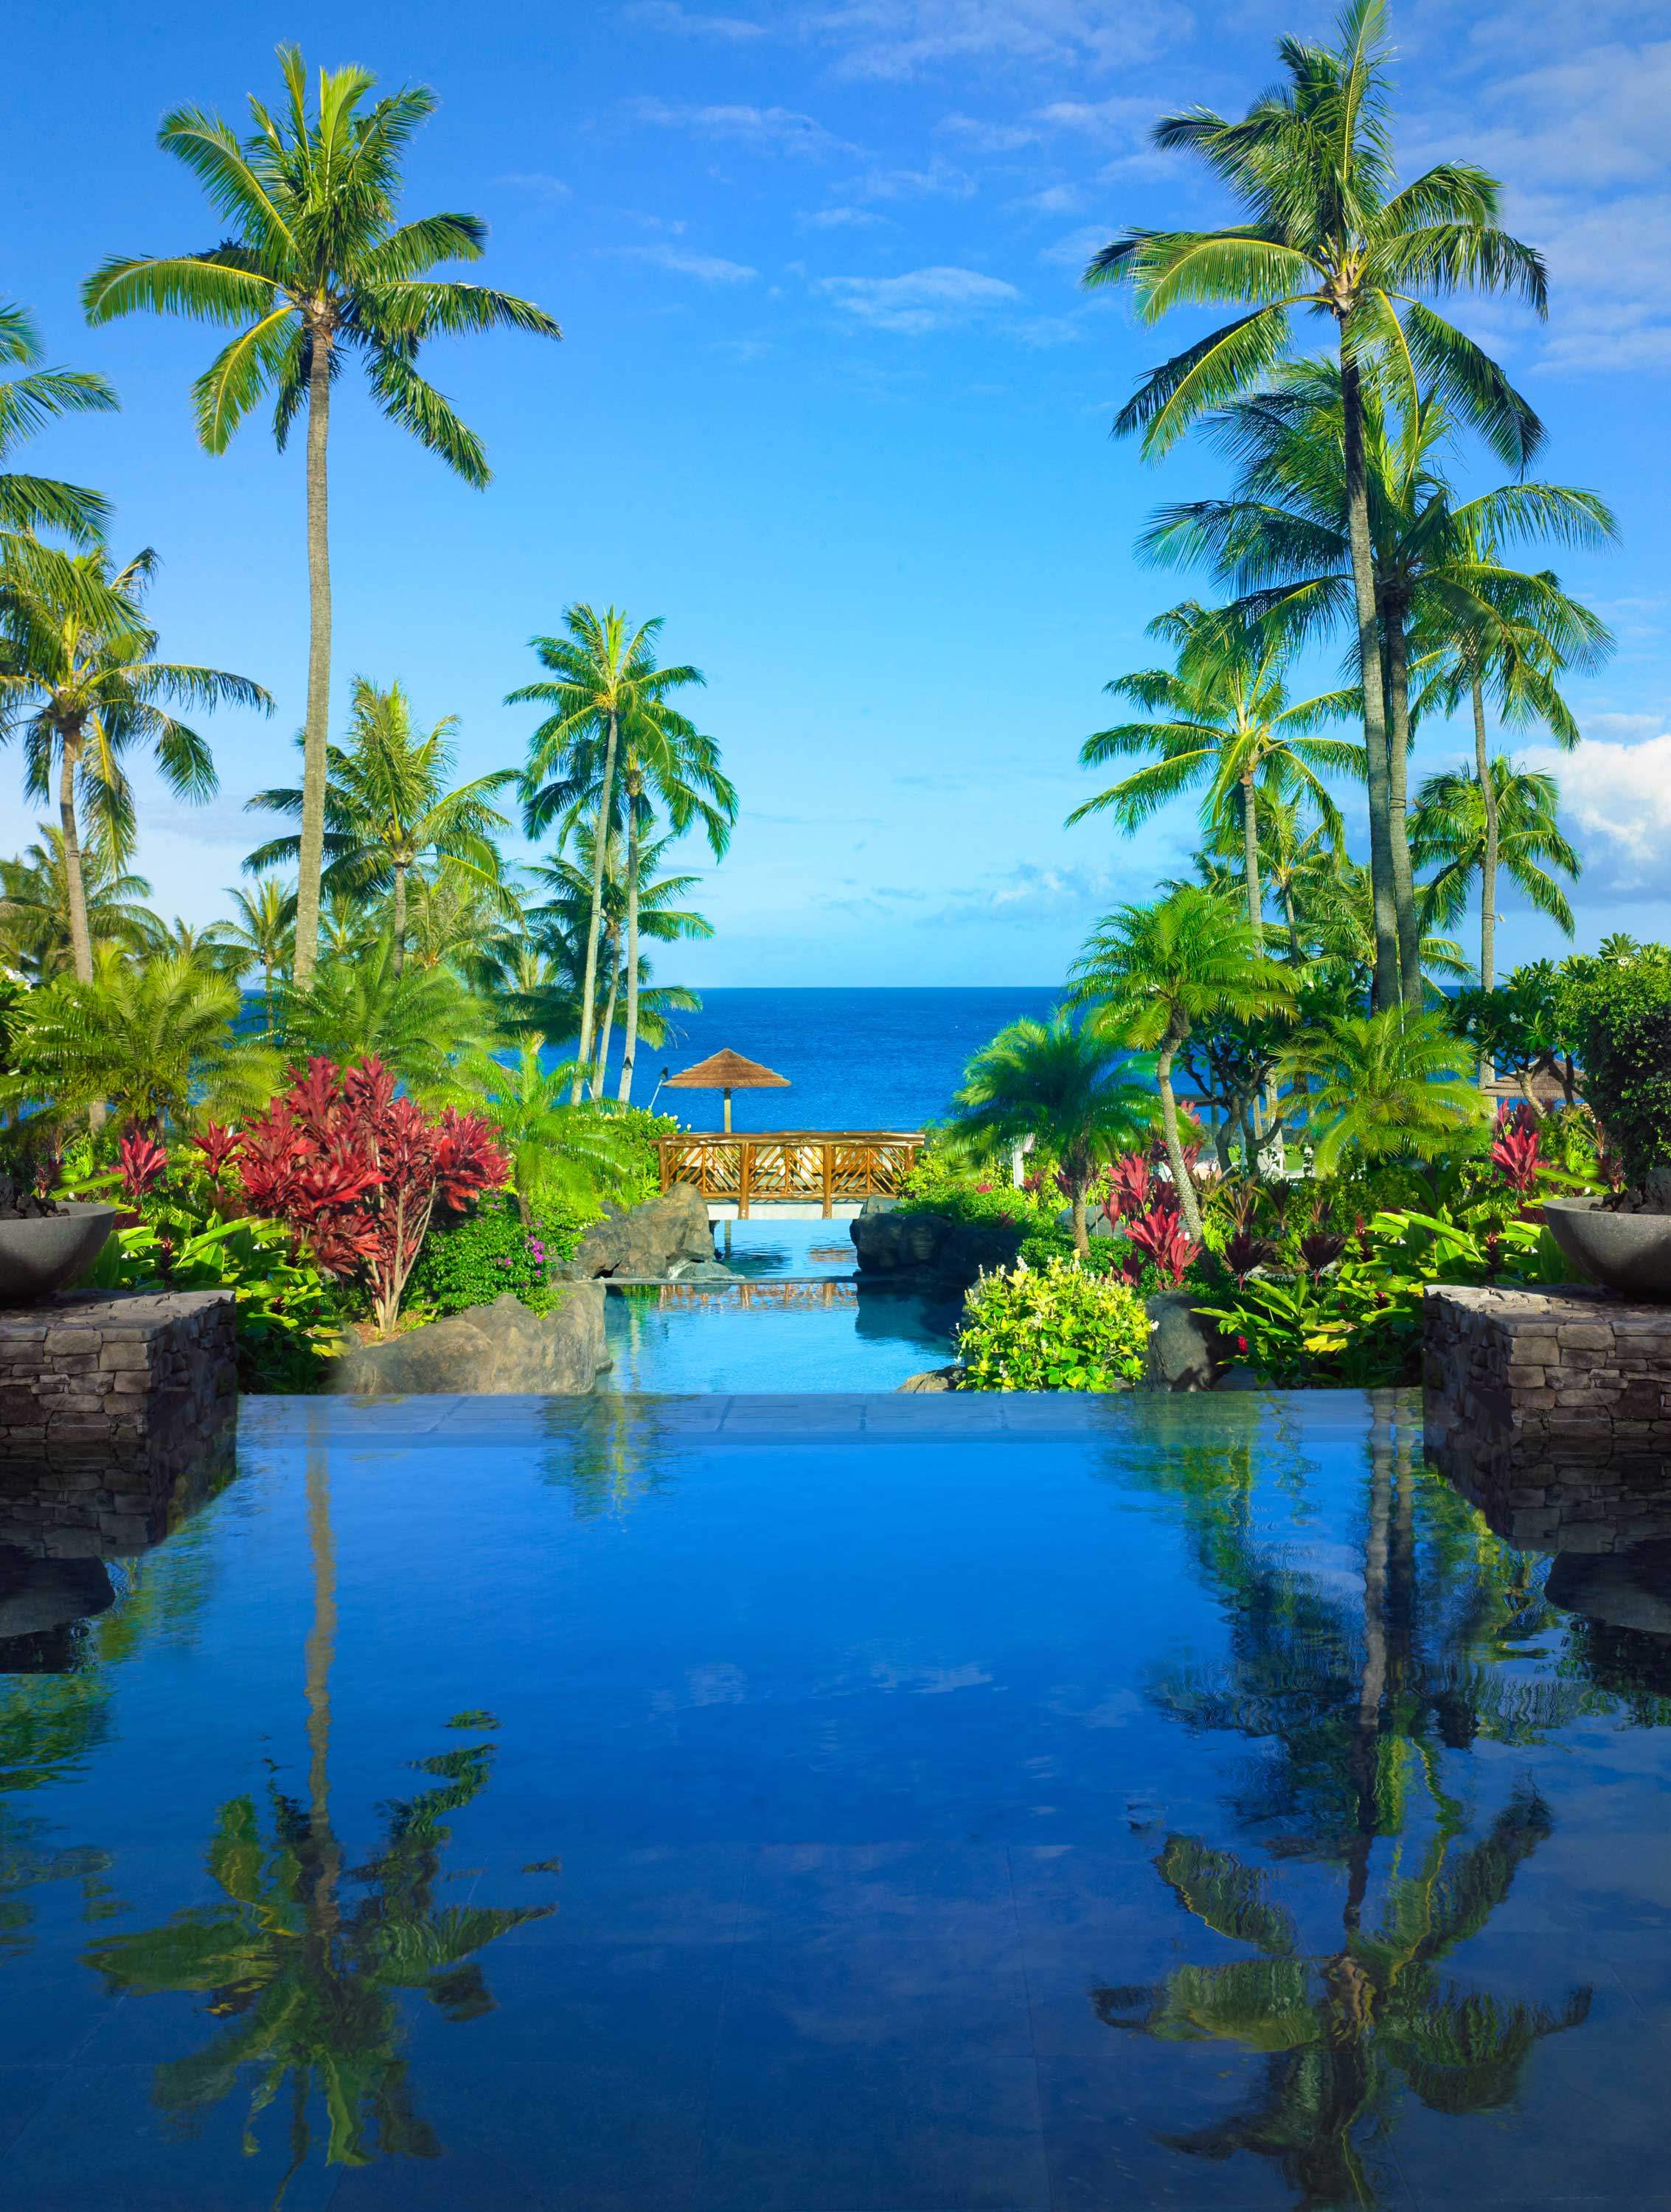 Architectural Pool at Montage Kapalua Bay in Hawaii Maui